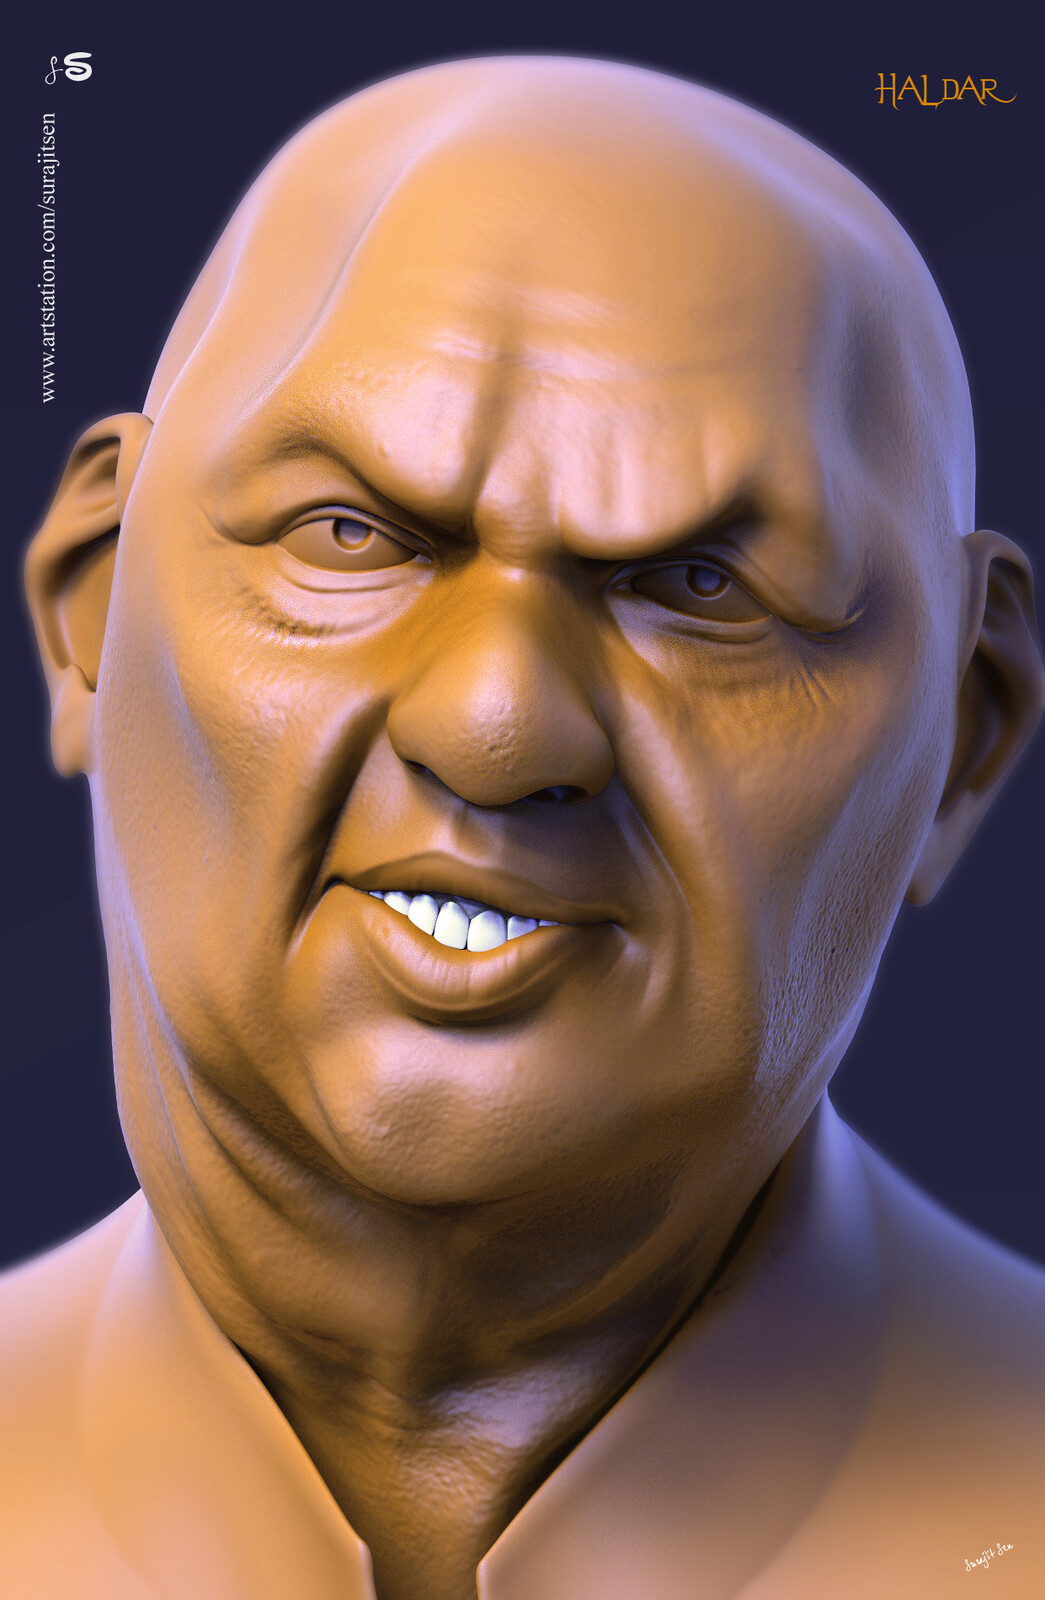 One of my free time quick Digital Sculpting study.